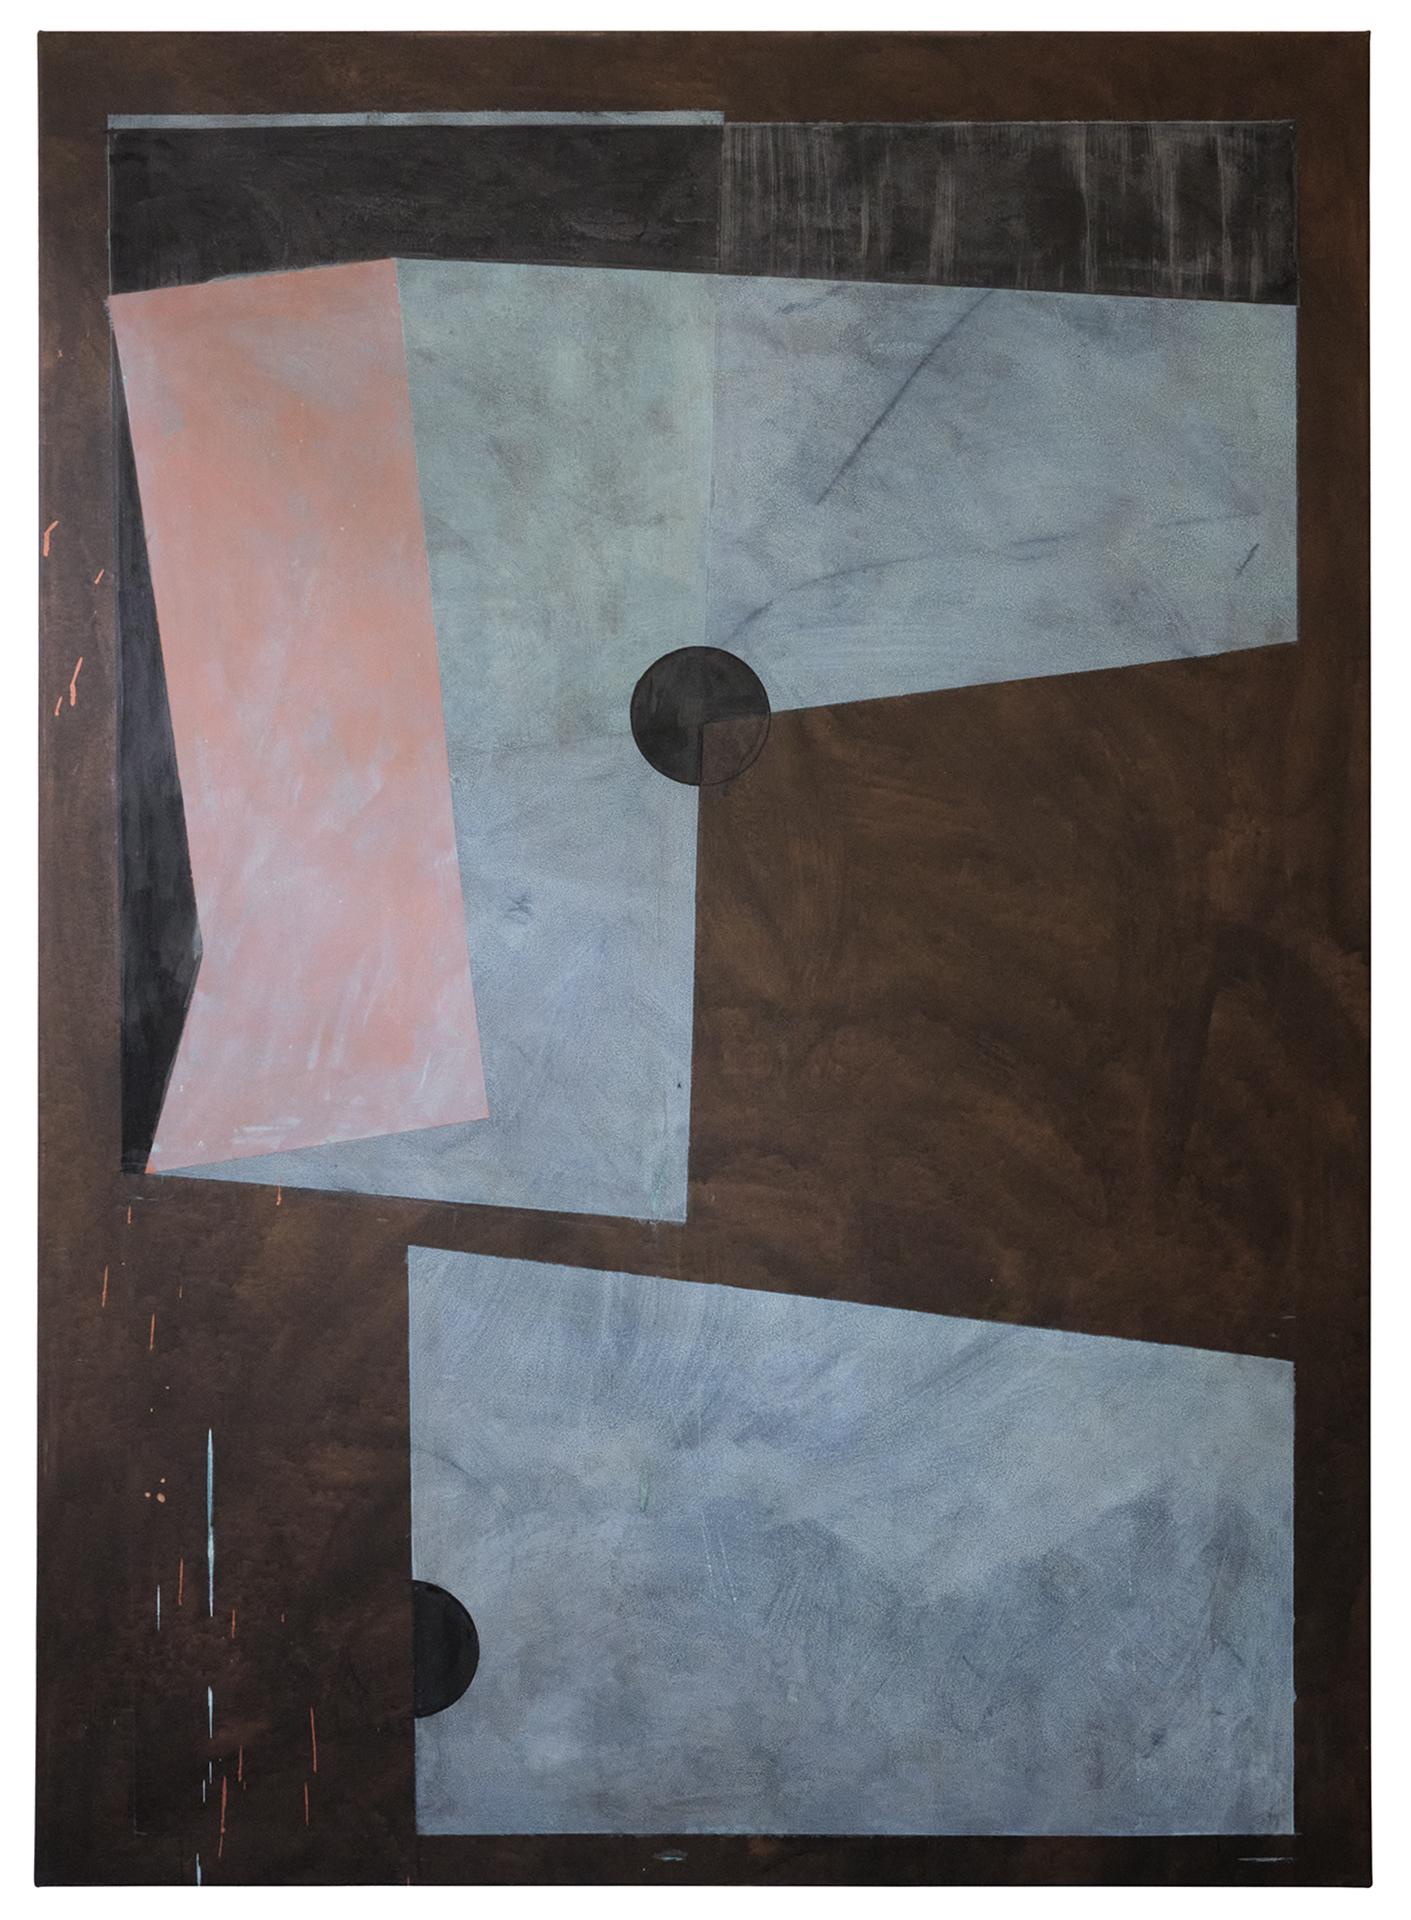 Gregor Eldarb Schinittmuster(Sewing pattern) 2020 140x100cm Acrylic, ink, copper paint, oxydised copper paint on canvas